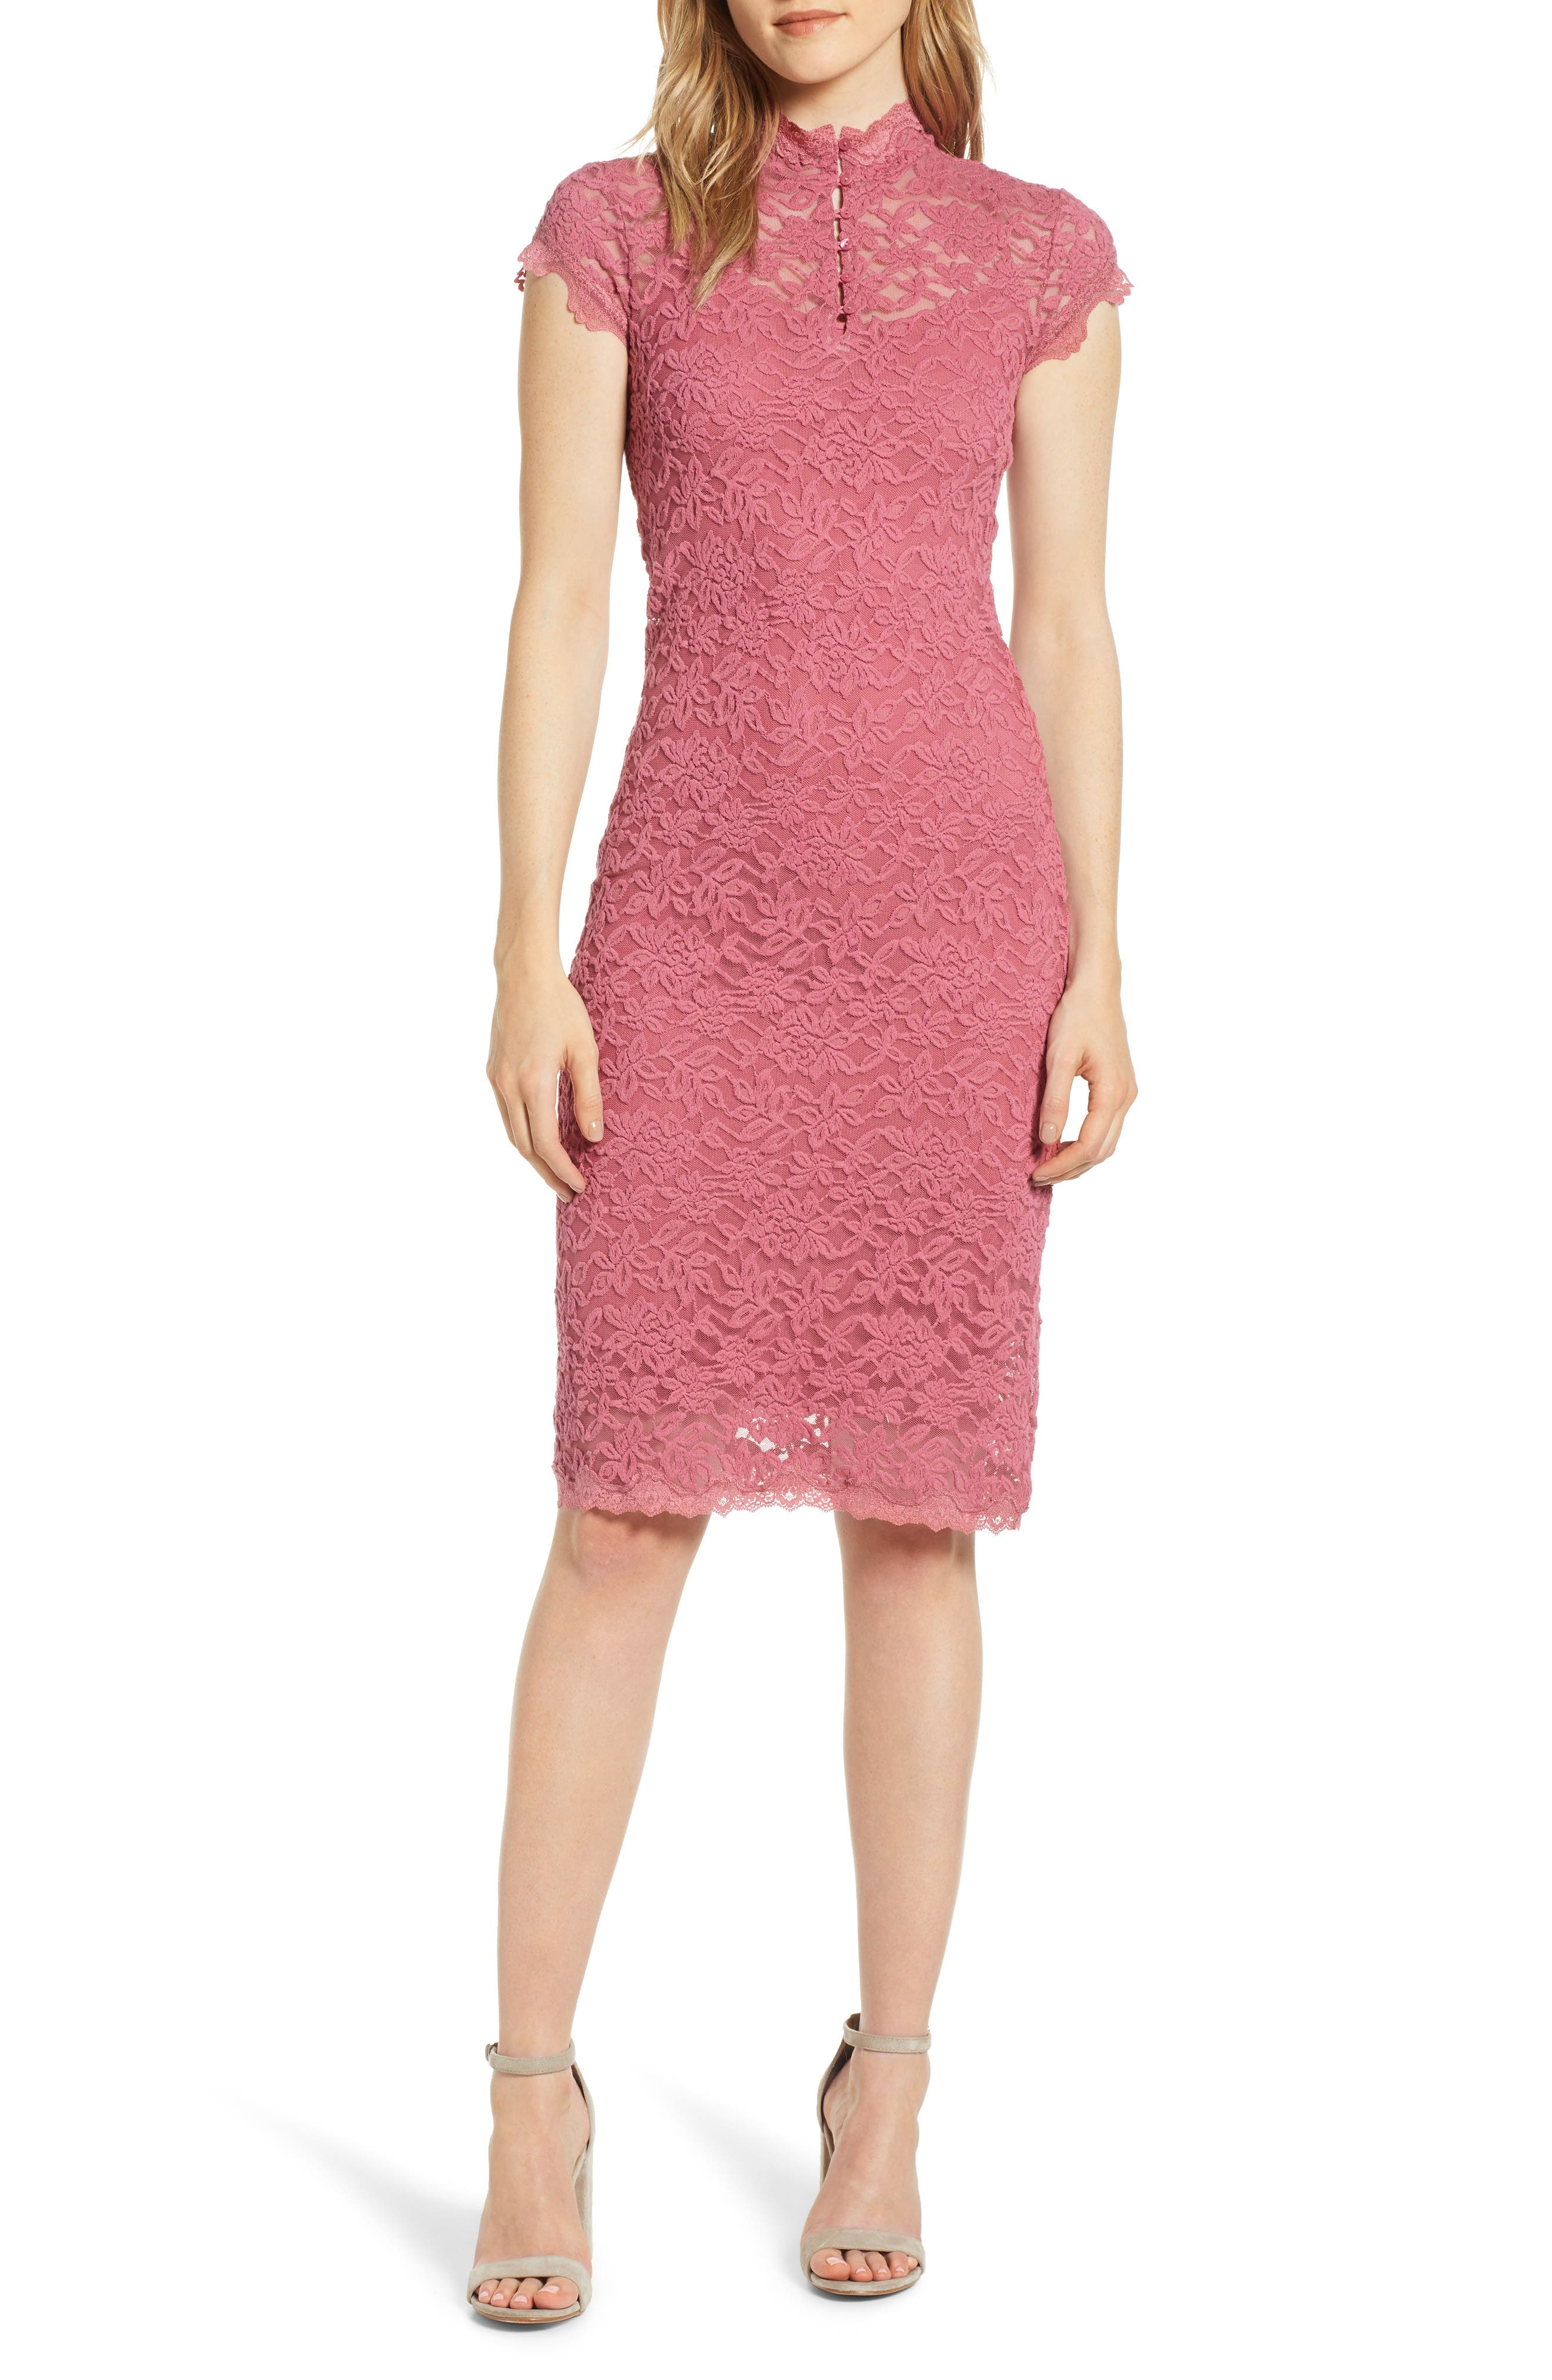 ROSEMUNDE, Delicia Lace Body-Con Dress, Main thumbnail 1, color, ROSEWINE 356